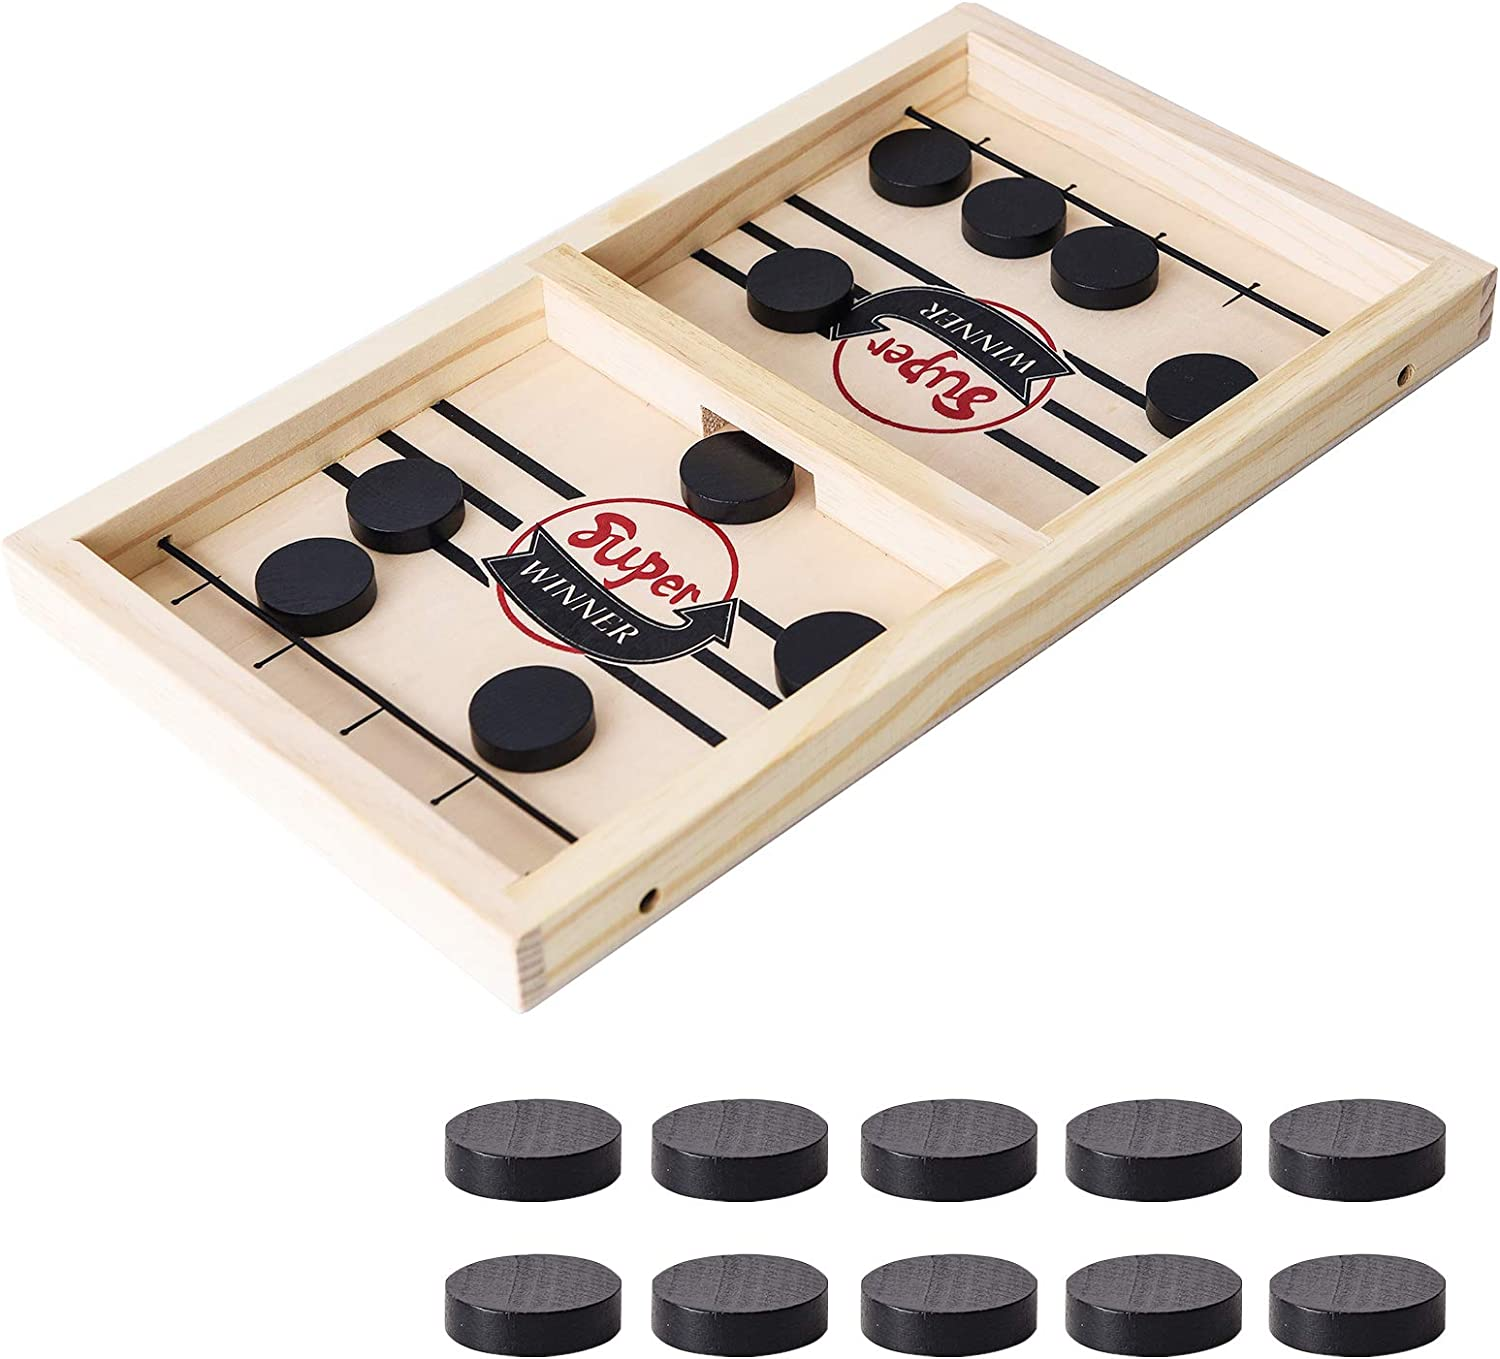 Yundu Fast Sling Puck Game,Foosball Winner Board Game,Table Desktop Battle Game for Parent-Child,Small (14 x 9 in)